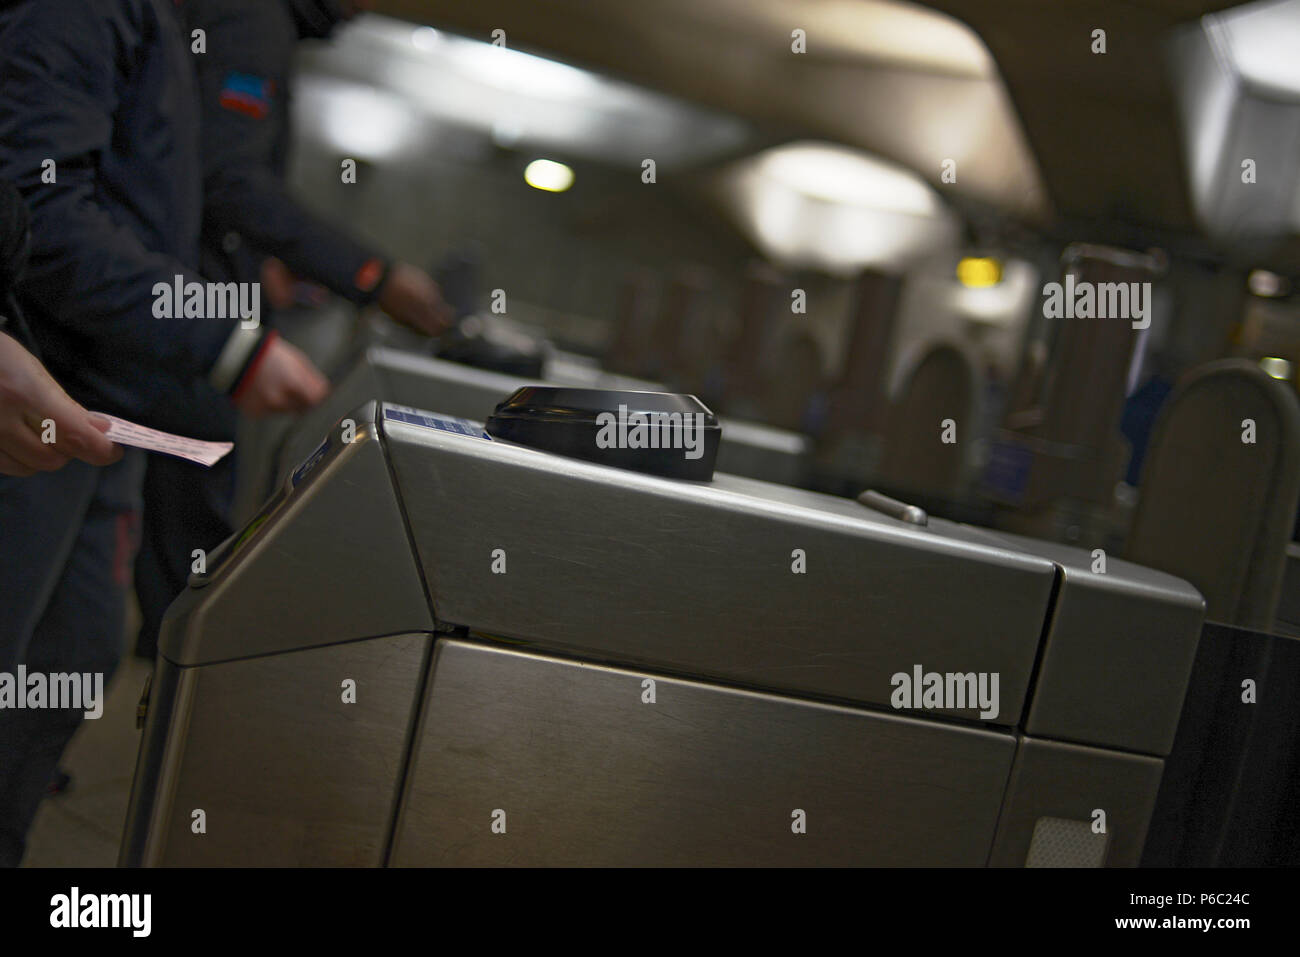 Close up of person tapping in their travel card to enter the turnstyle at the London Underground - Stock Image